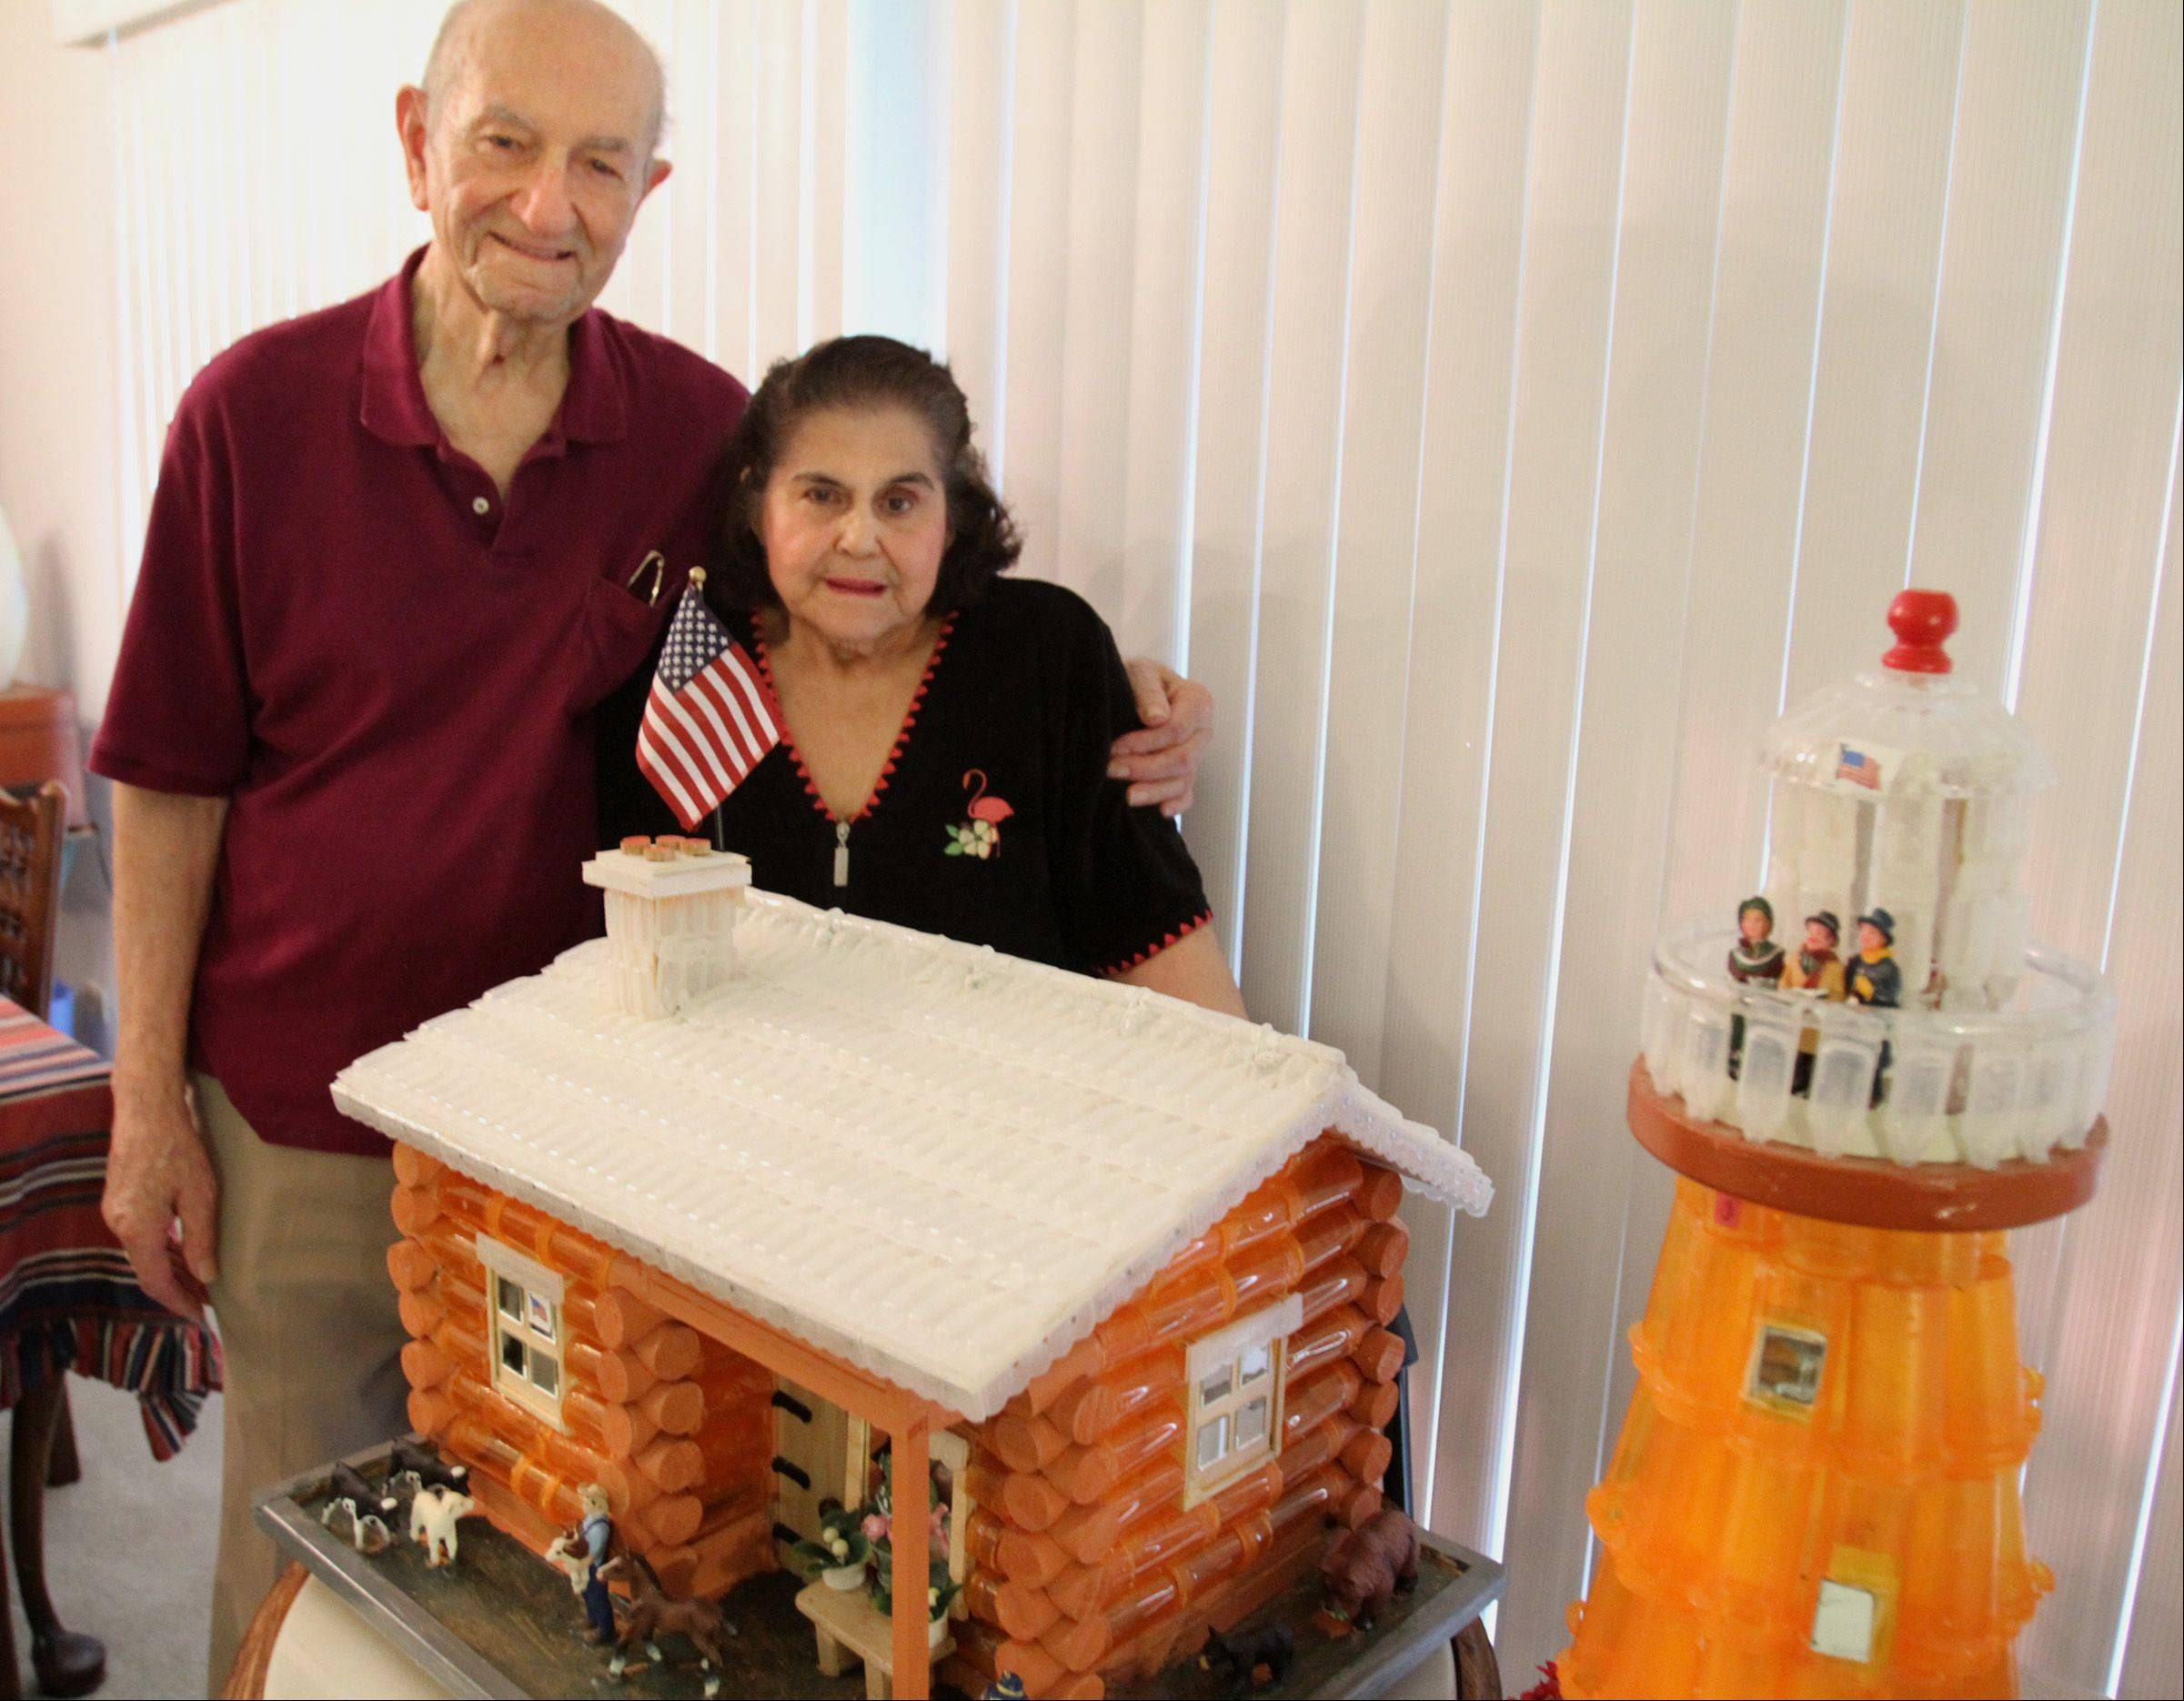 With his wife, Beatrice, taking lots of medications, 93-year-old World War II veteran Jake Joseph of Prospect Heights decided to put all her empty pill bottles to use. The self-taught folk artist used 170 empty bottles and 175 spent inhalation tubes to craft this log cabin. The lighthouse is made from 60 bottles and 60 tubes.